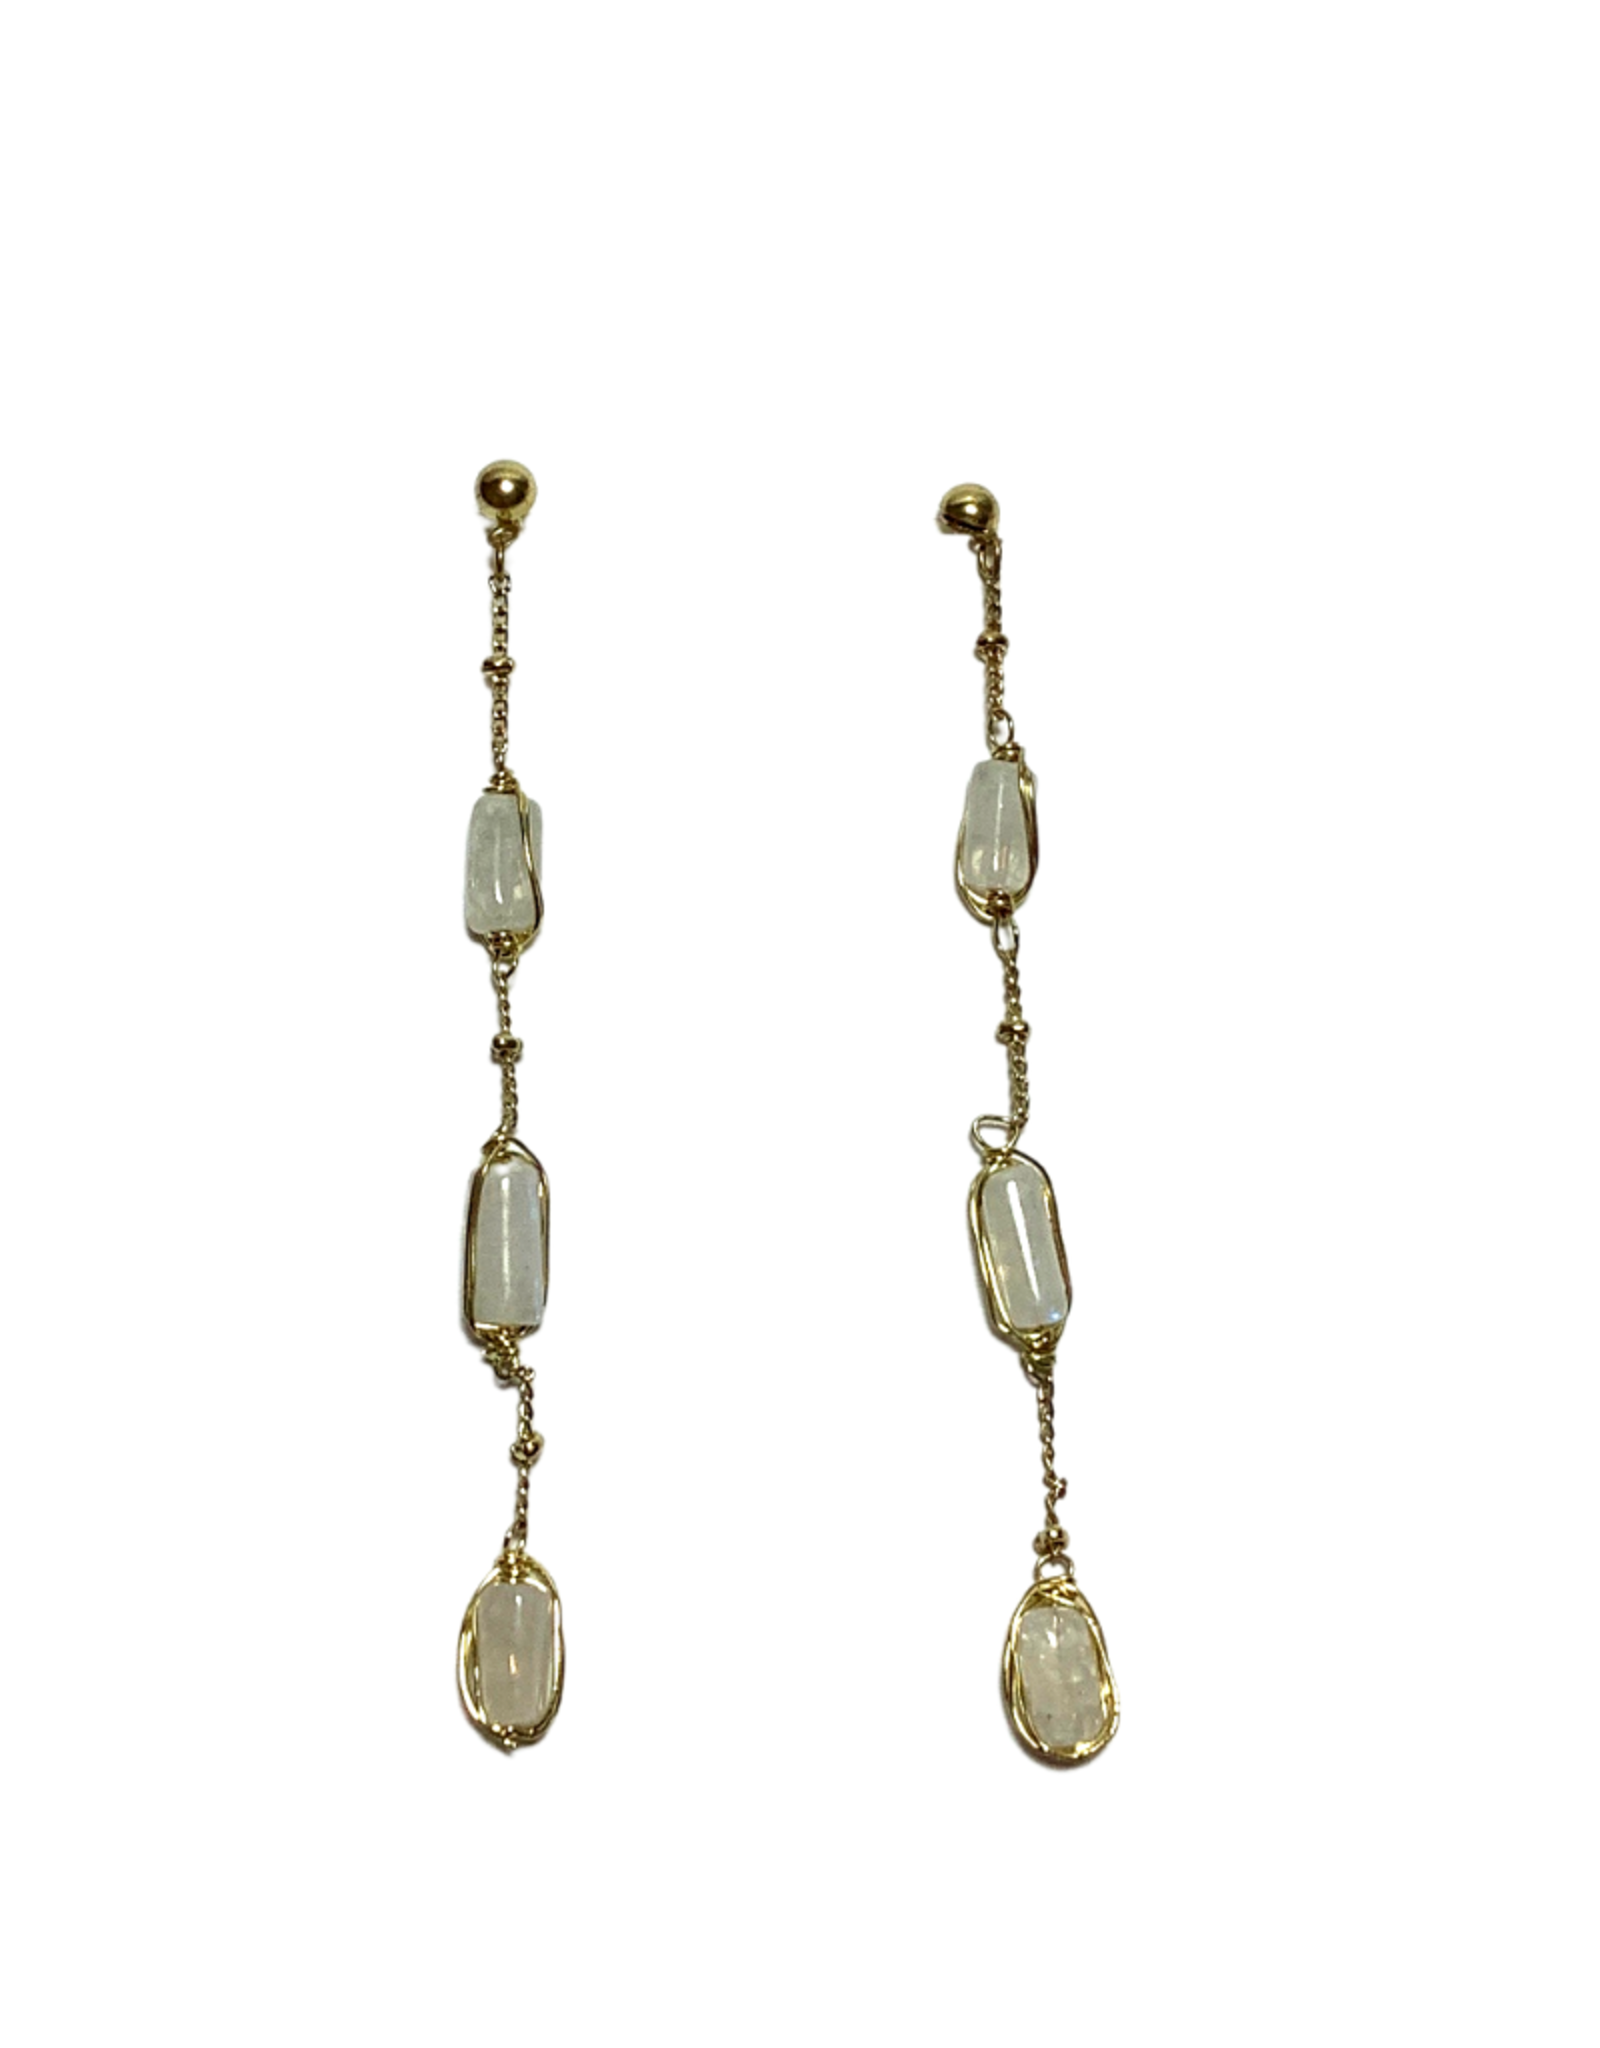 Ten Thousand Villages Brass and Stone Earrings